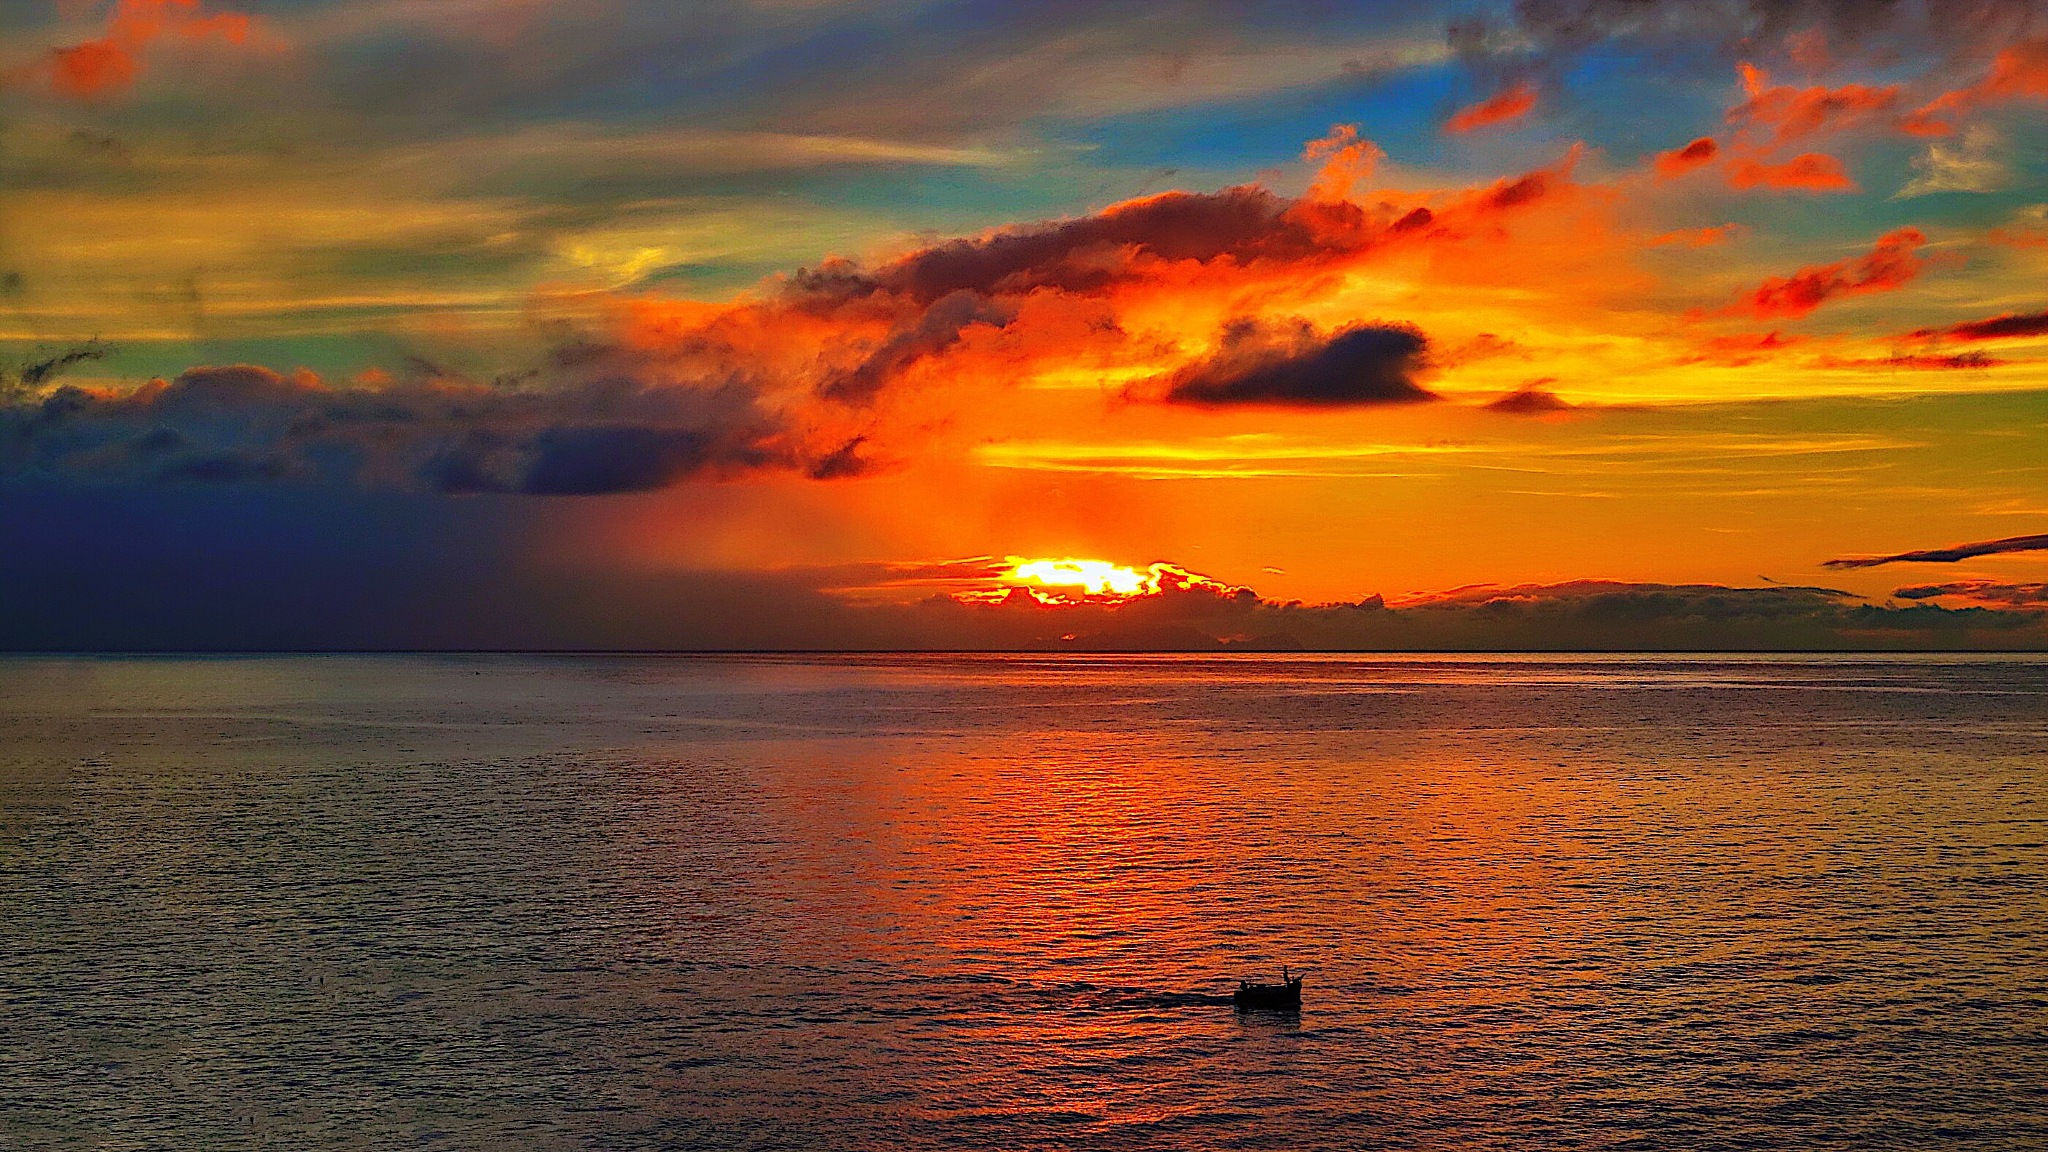 Sunset over the Atlantic  by Terry Reynolds